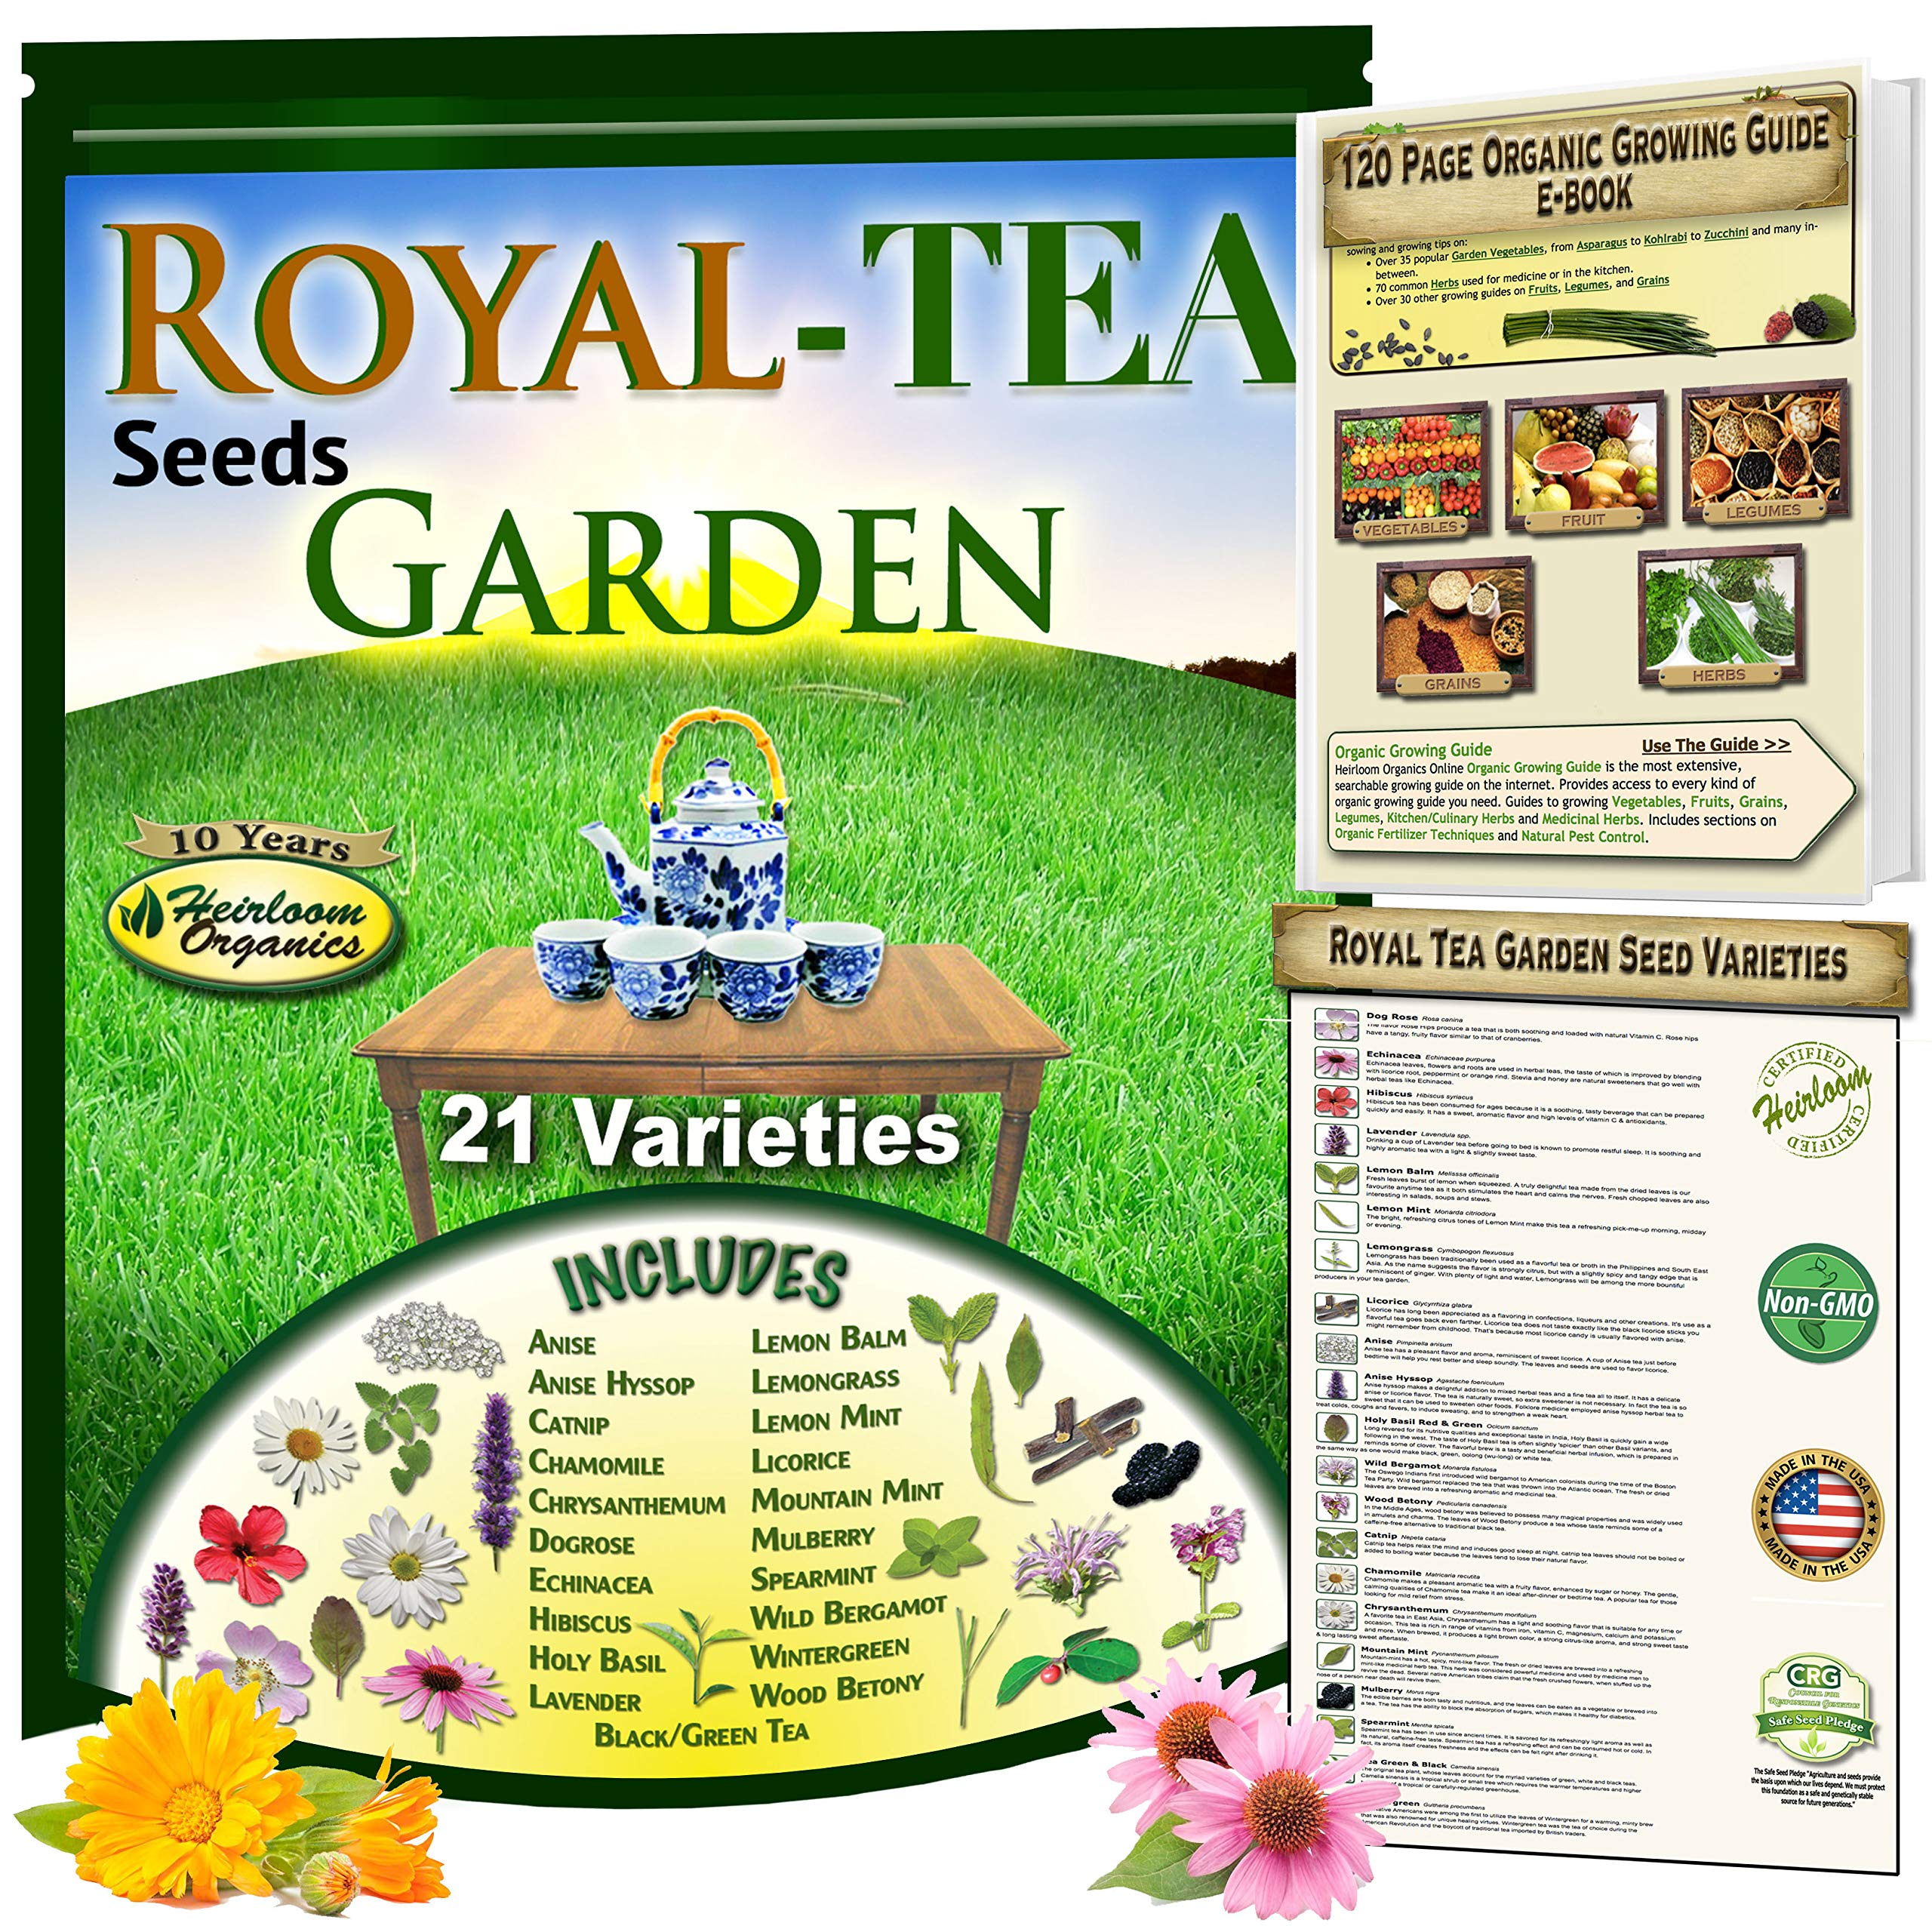 Royal Tea Seeds Garden: 21 Heirloom Collection of Herbal Tea Varieties, Including: Anise, Holy Basil, Catnip, Chamomile, Lemon Balm, 3 Types of Mint, Lavender, Licorice, Hibiscus, Wintergreen & More by Heirloom Organics